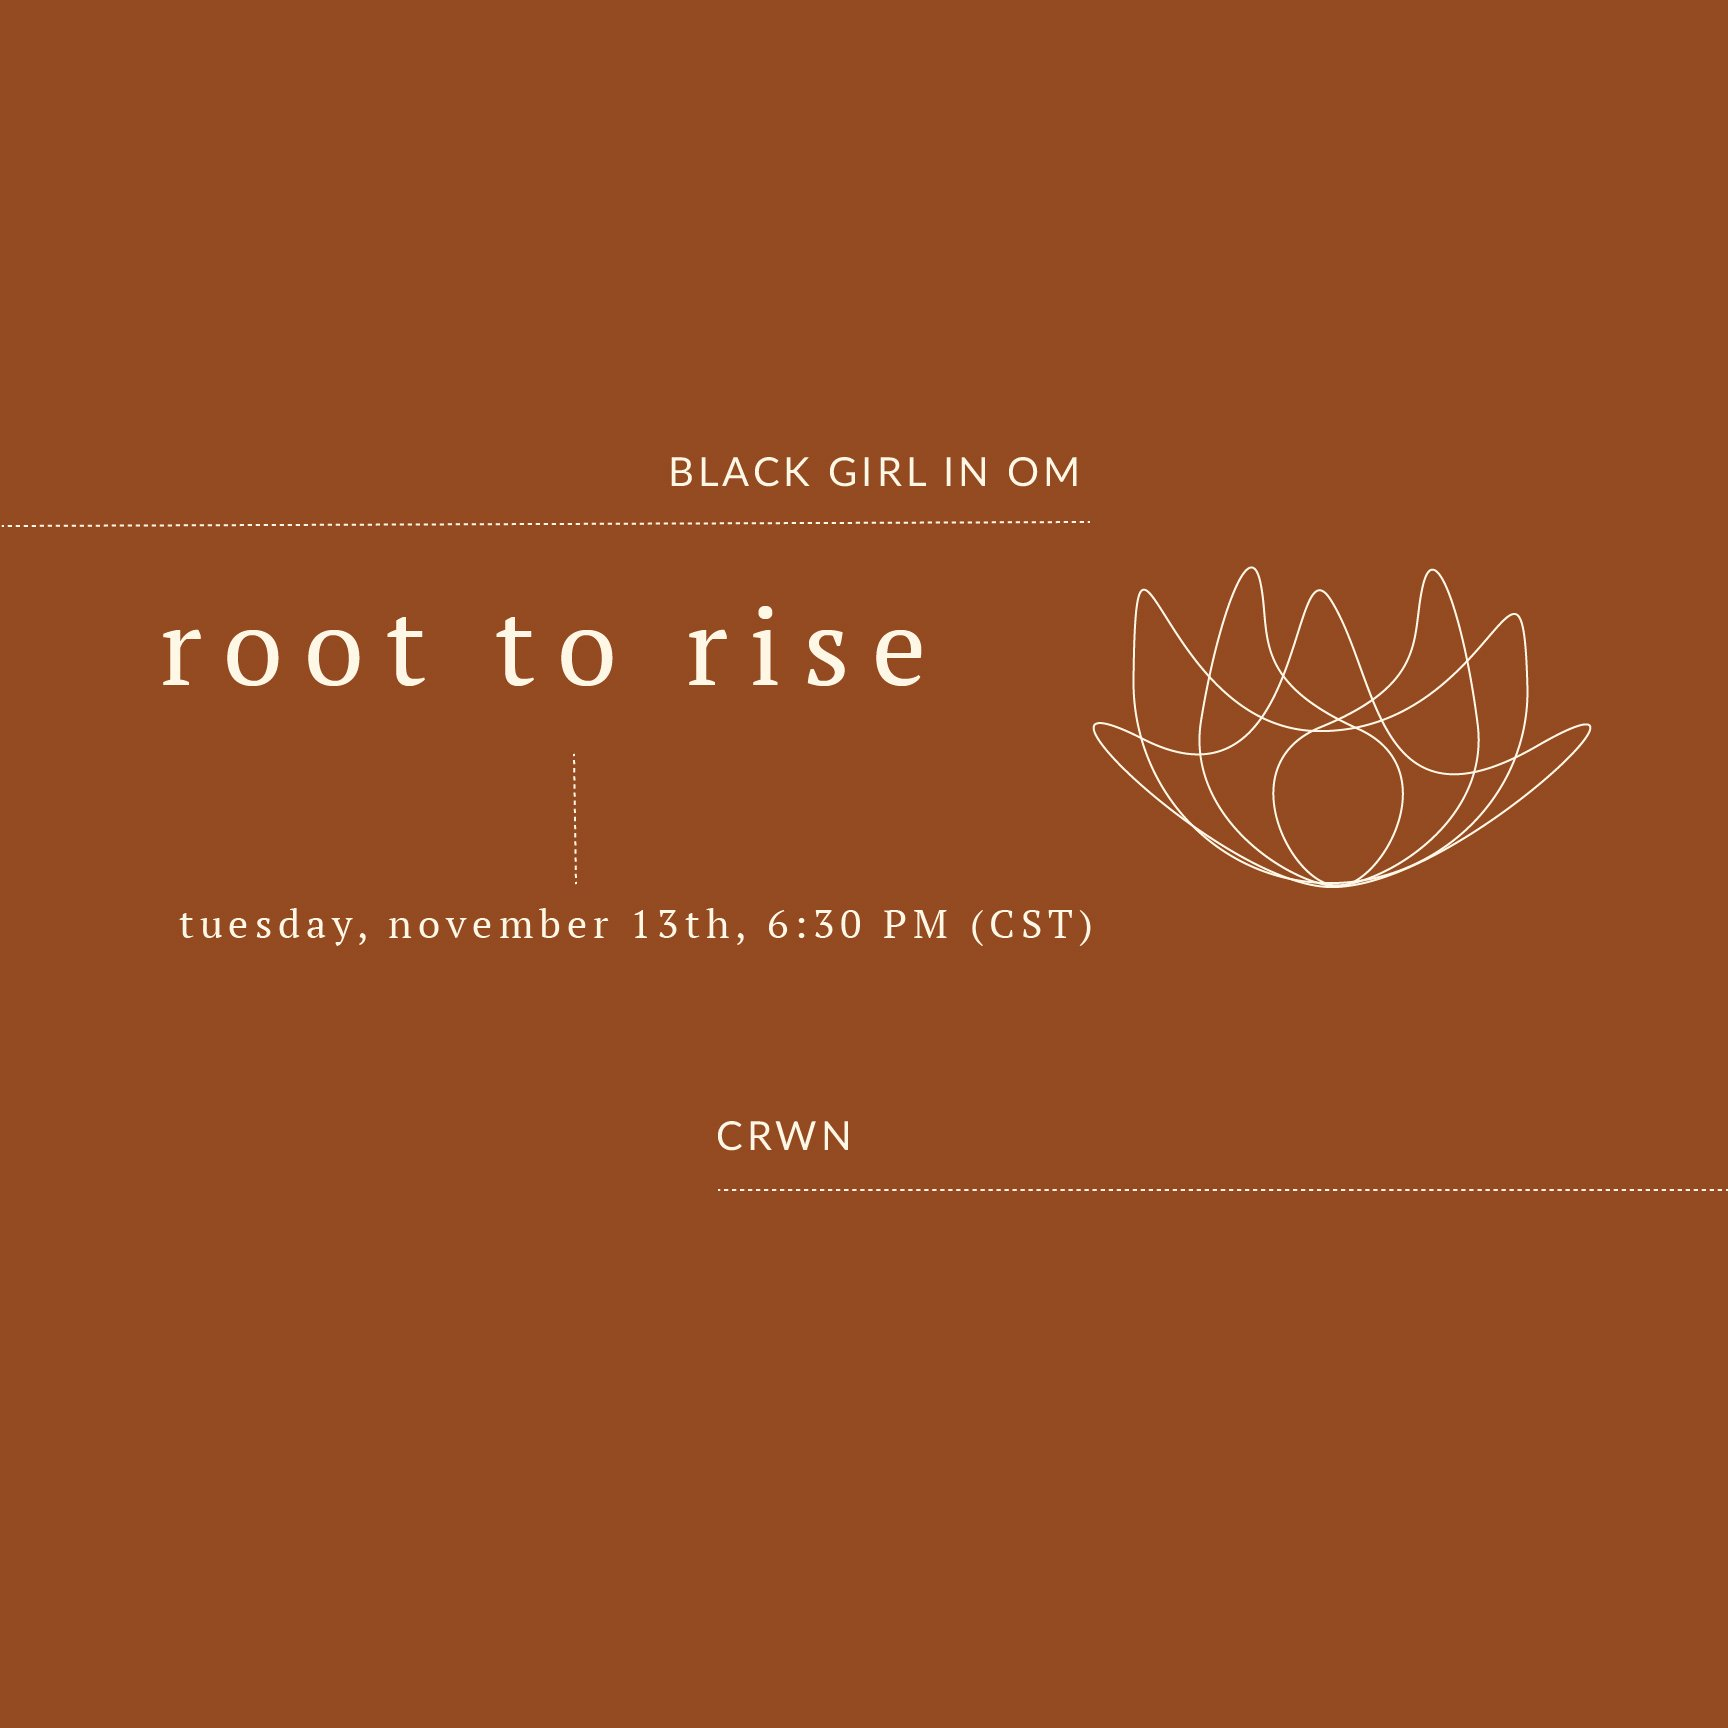 root to rise twitter chat.jpg